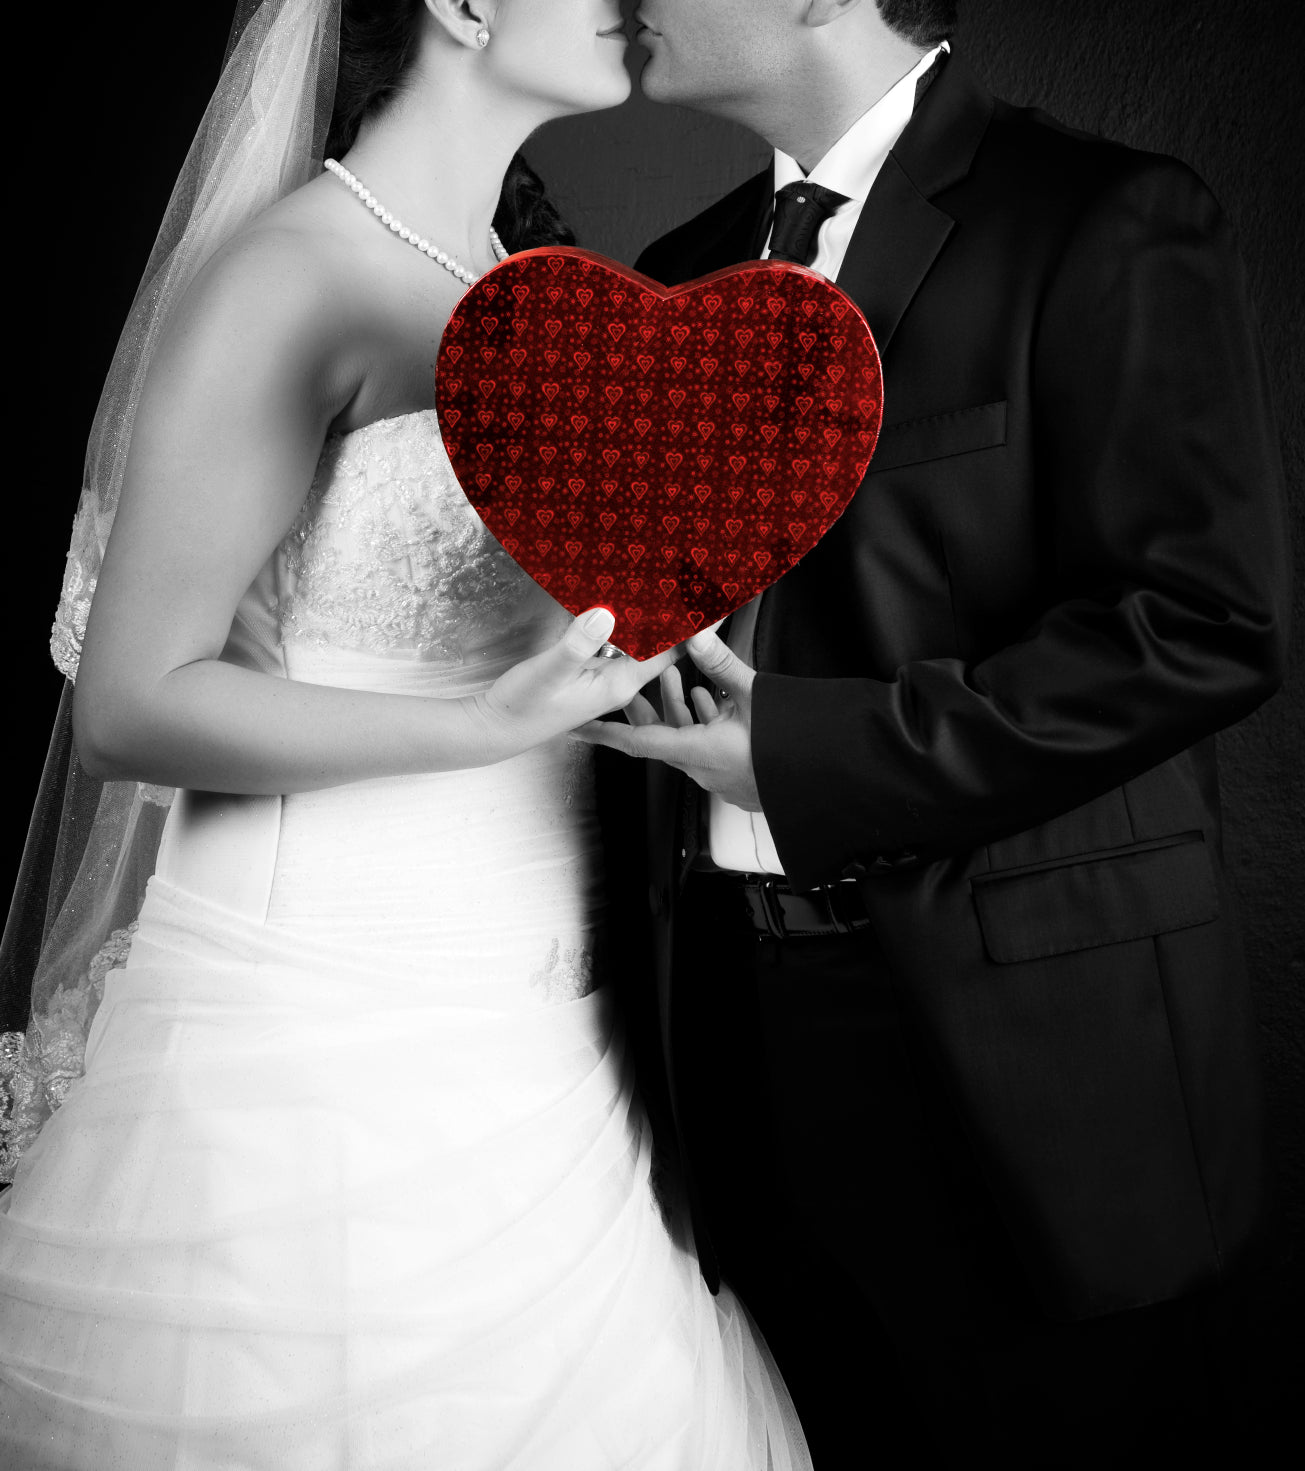 Should You Have Your Wedding On Valentine's Day? The Pros and Cons | @MyWeddingFavors | 101dalmations / iStockPhoto